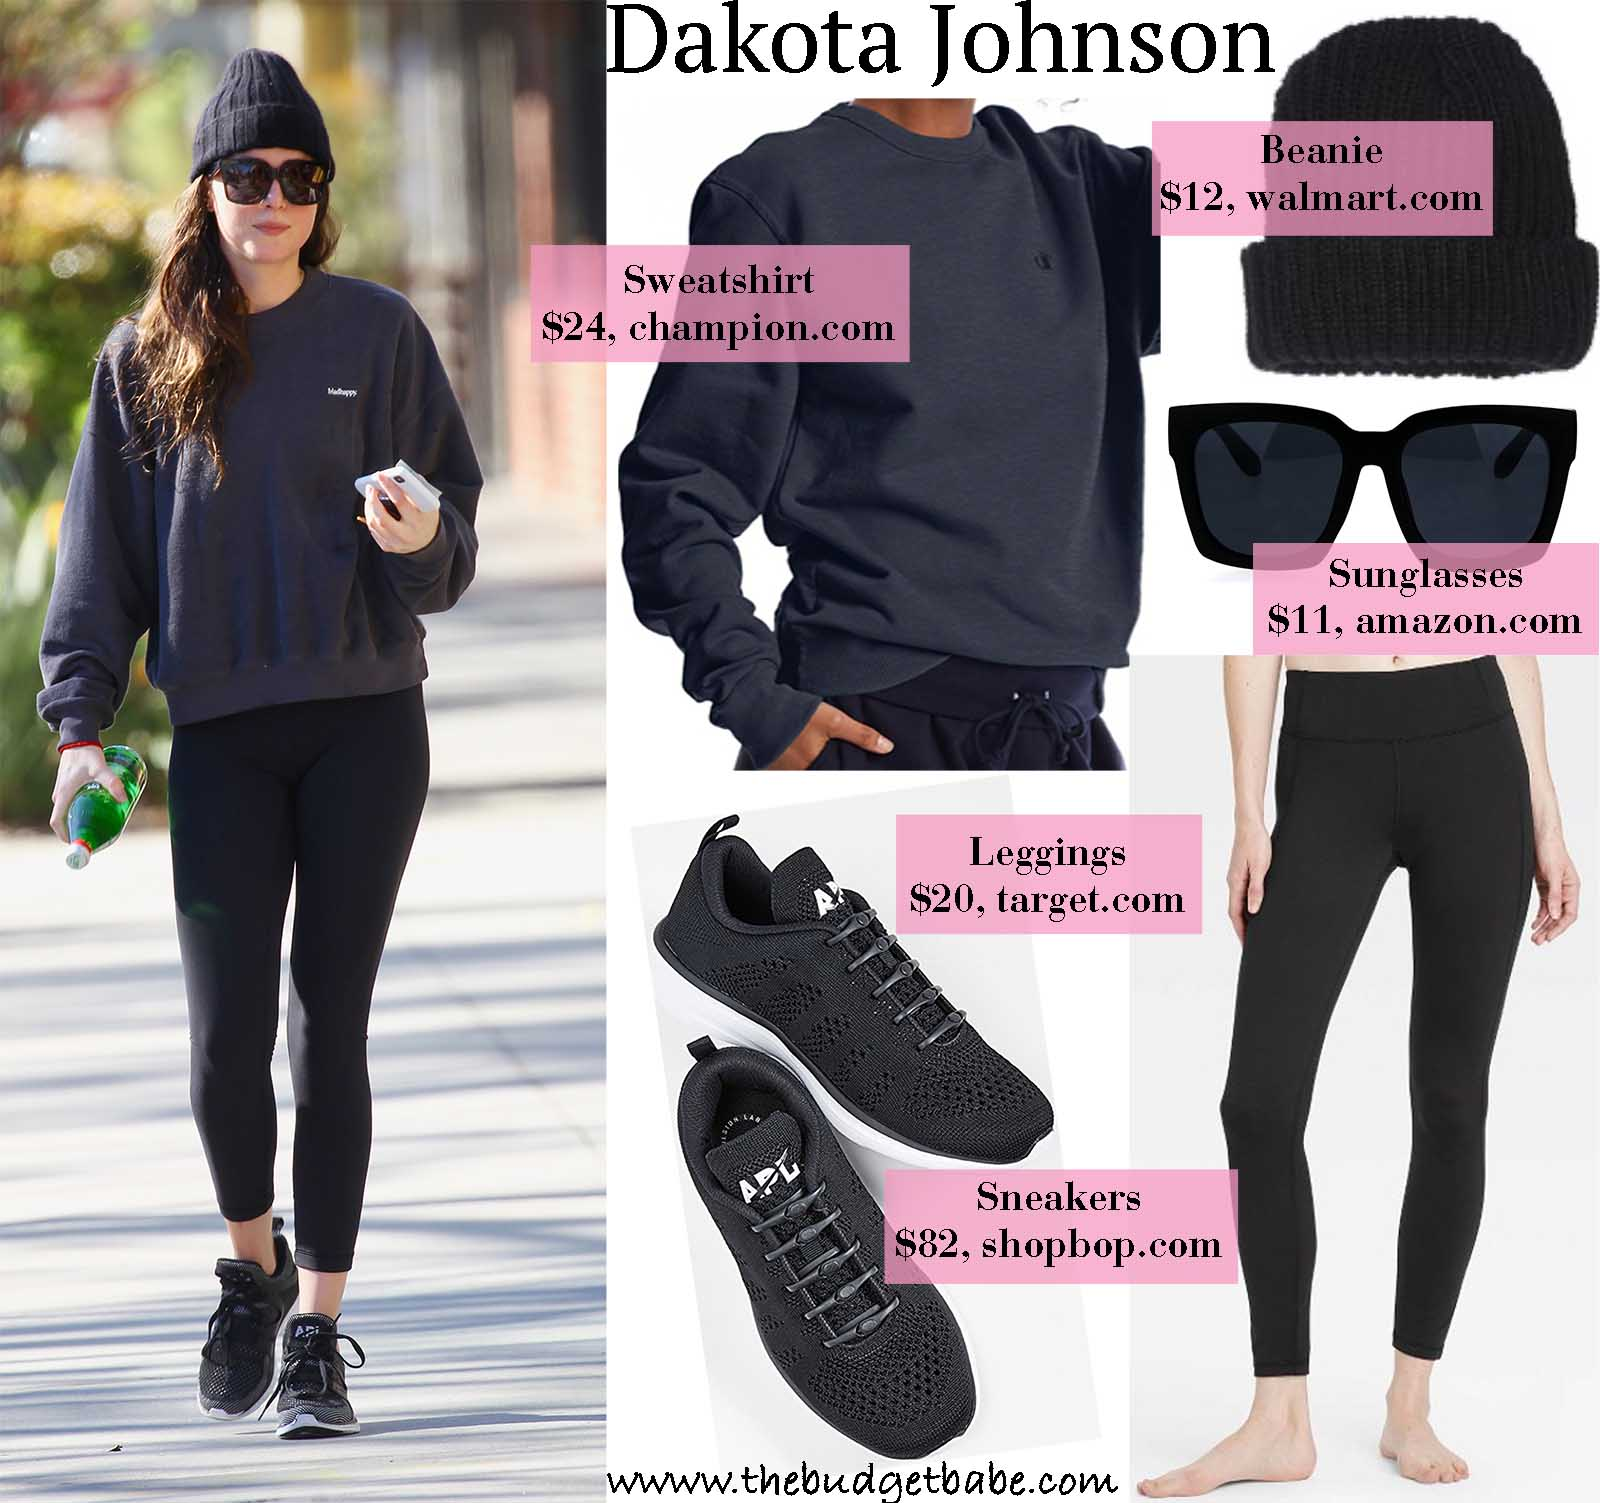 Dakota Johnson stays cozy in a stylish sweats.